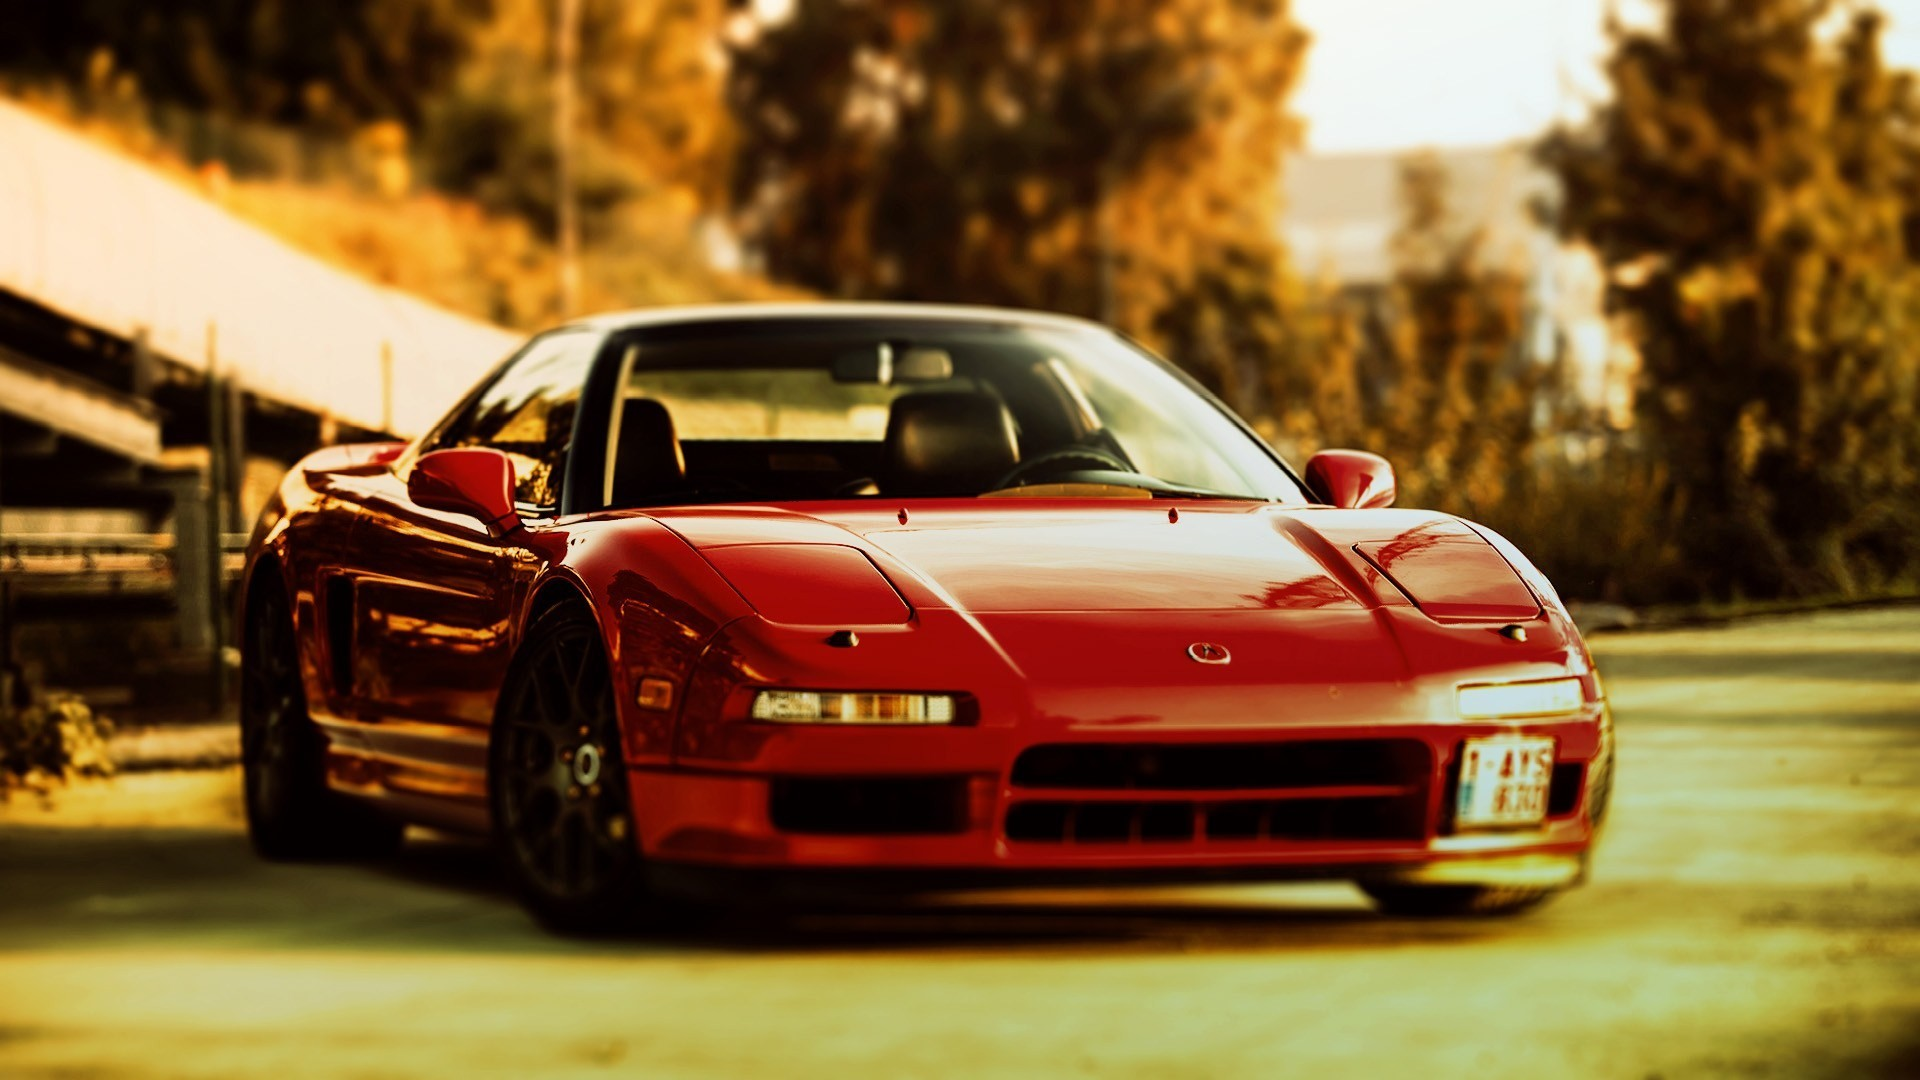 … wallpapers 38811; full hd acura integra background download high  definiton …